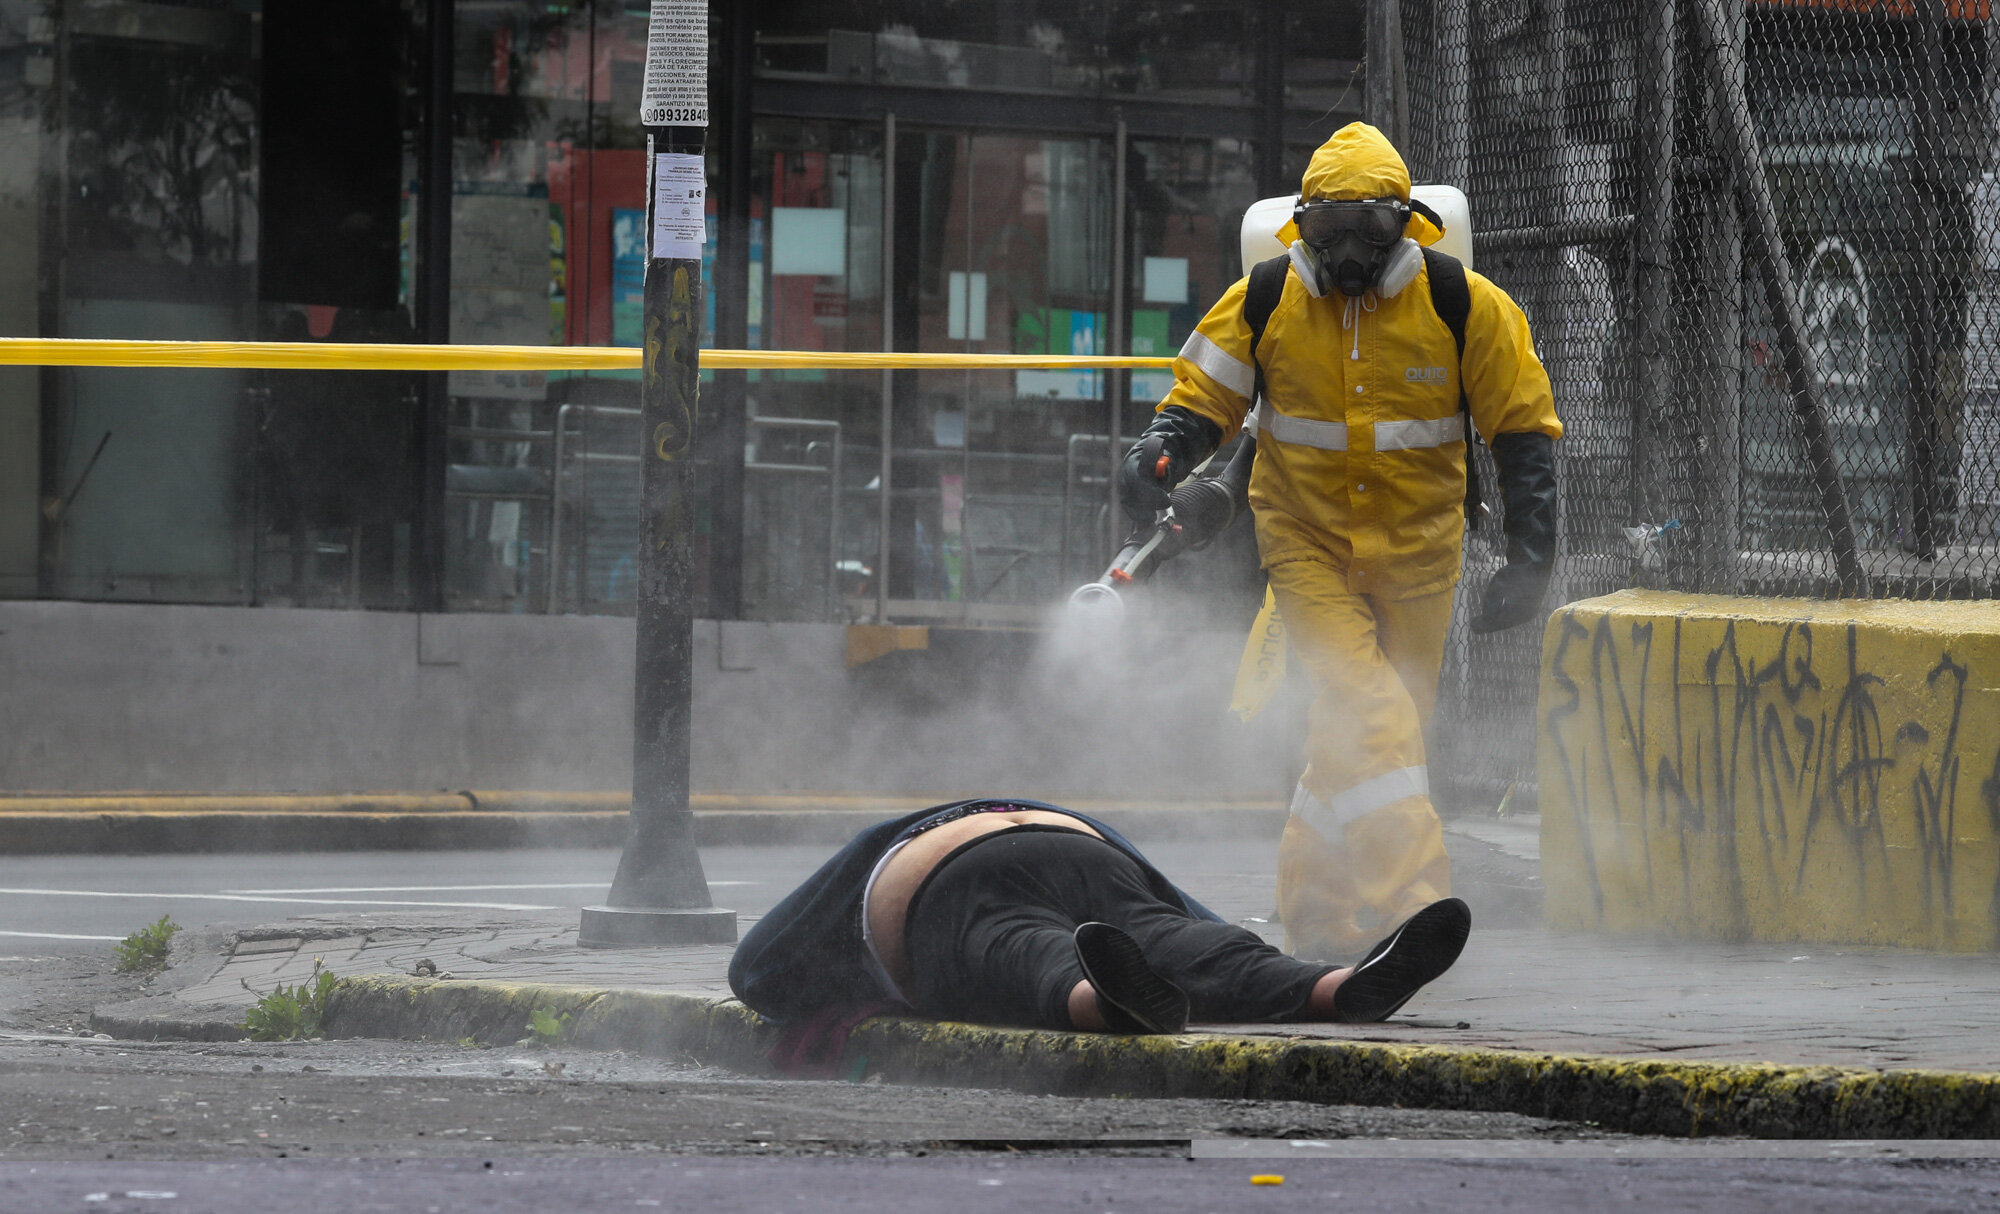 A worker from the city's forensic department  in Quito, Ecuador, sprays disinfectant over the body of a woman who died on the street on May 14, 2020. Forensic workers at the scene conducted a COVID-19 rapid test and said the woman tested negative. (AP Photo/Dolores Ochoa)